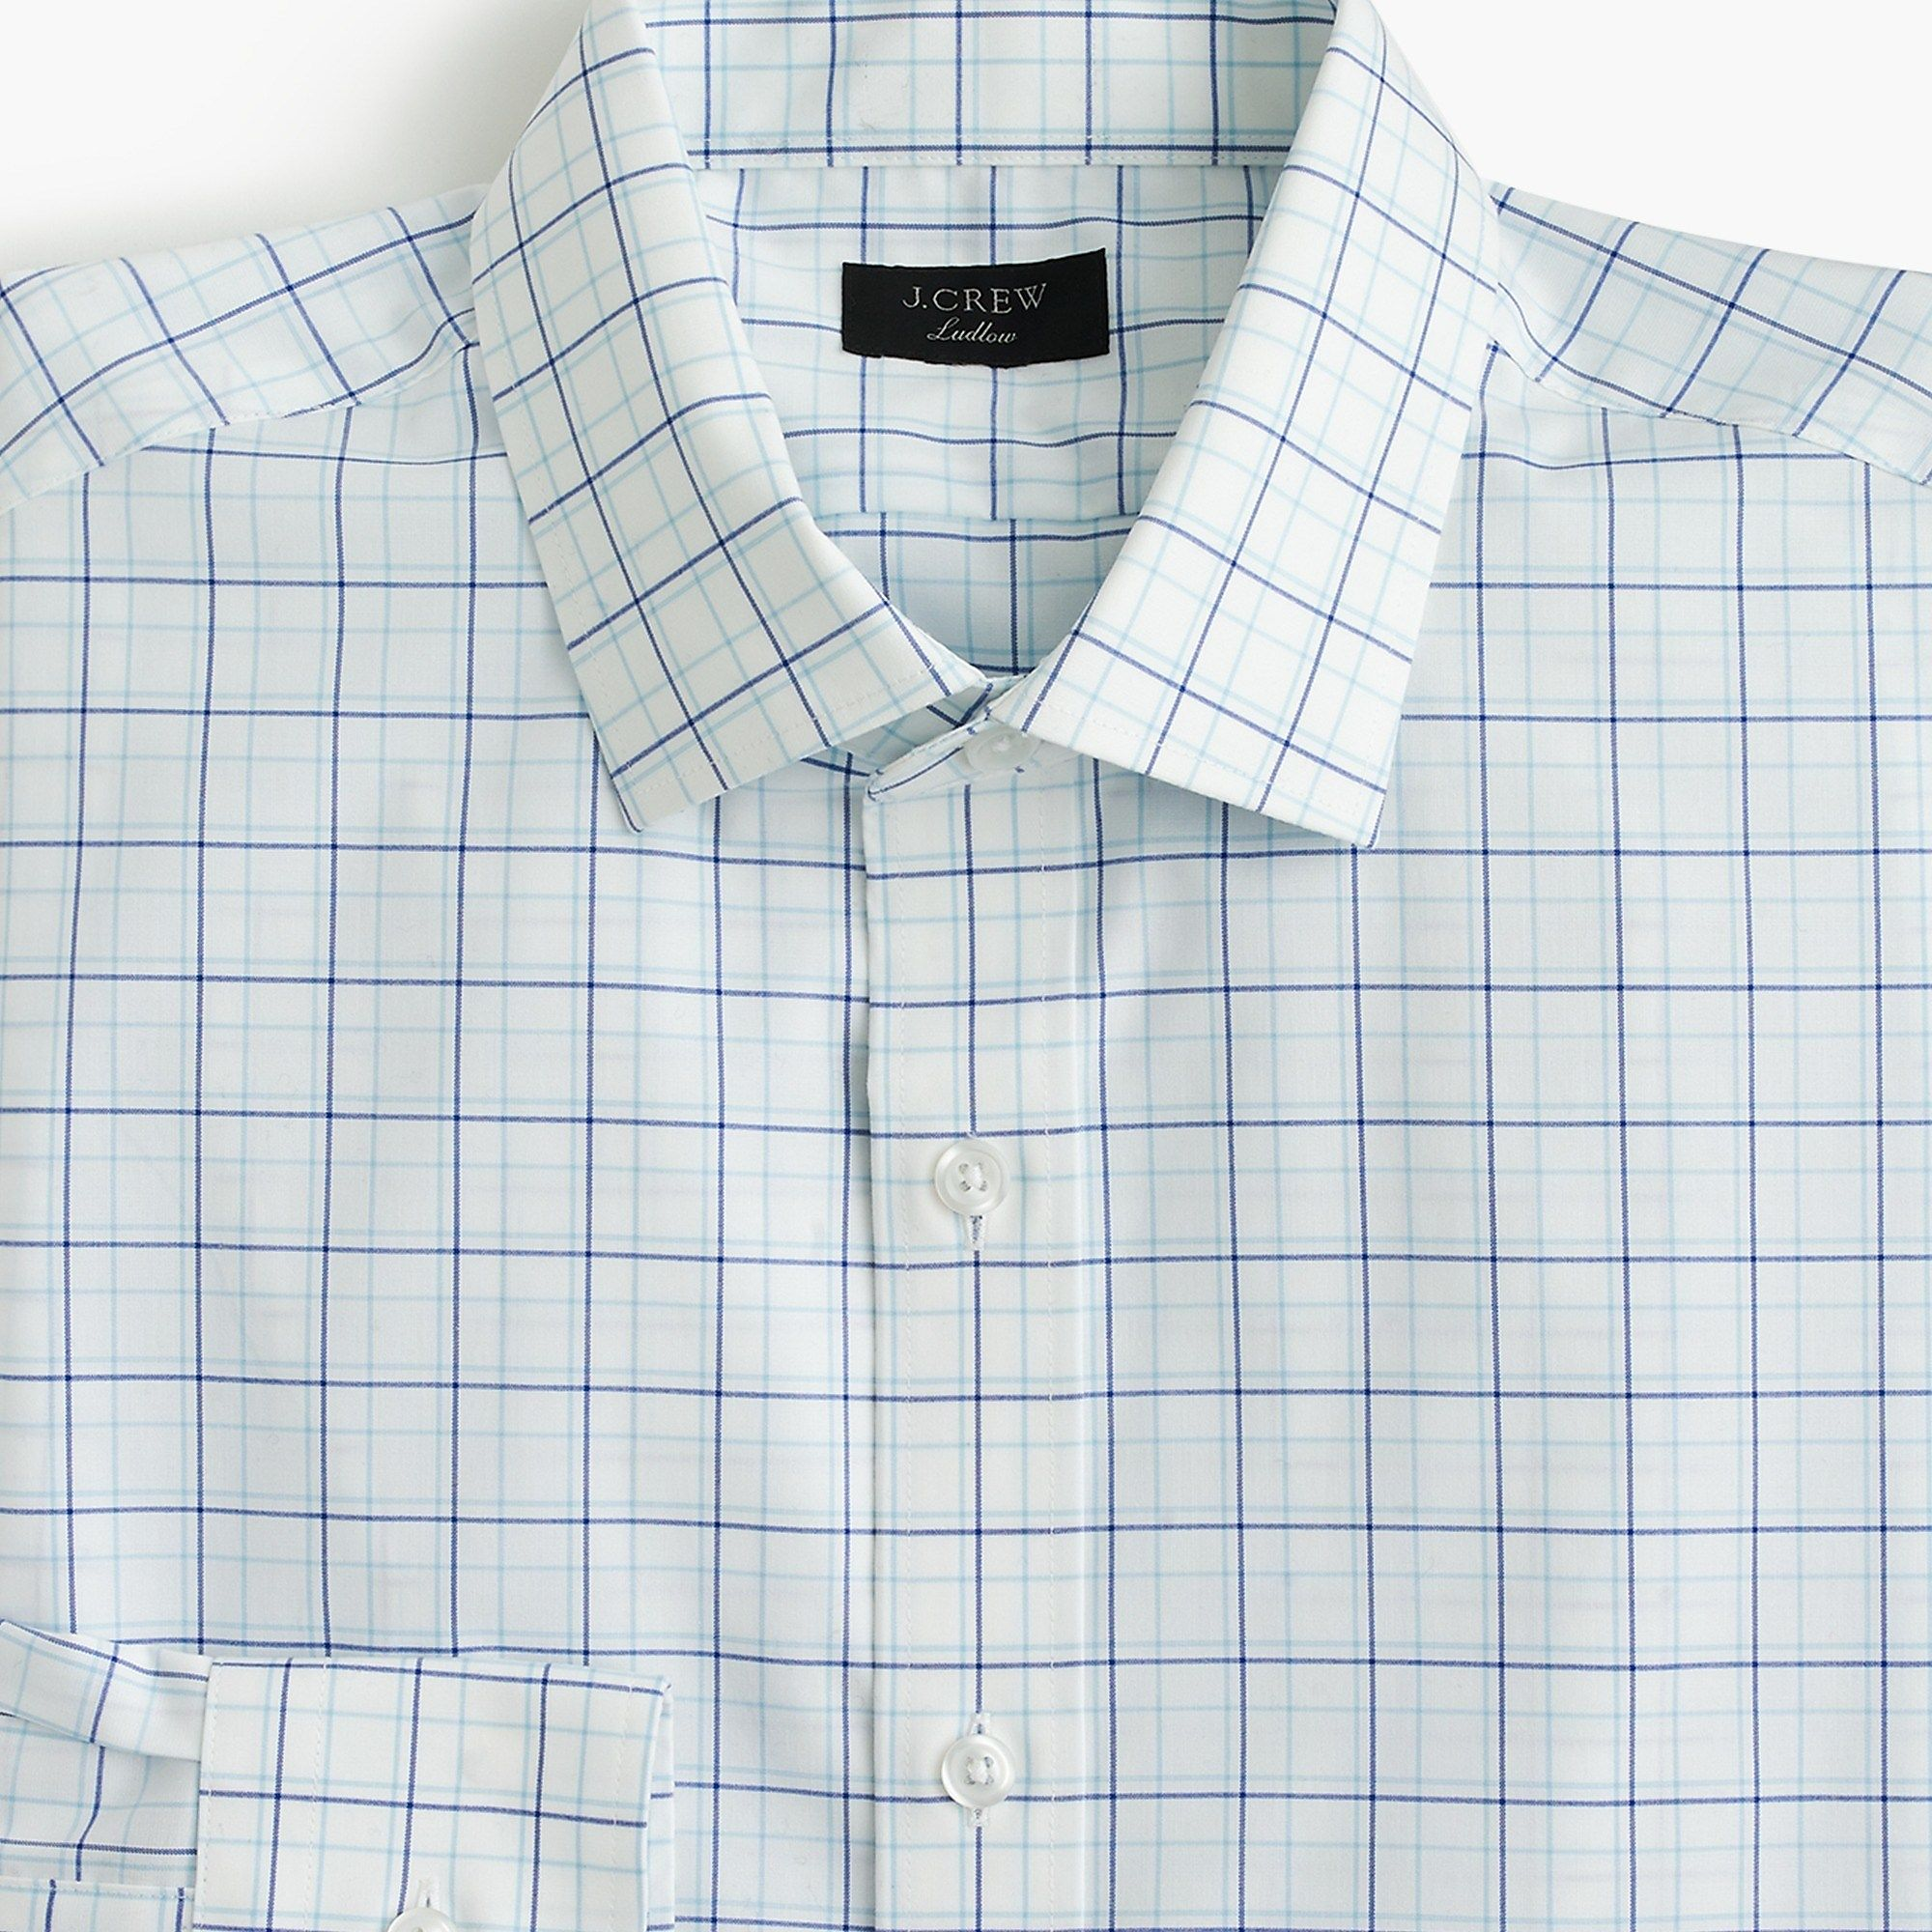 5ebb9e6a3fc5 J.Crew - Ludlow stretch two-ply easy-care cotton dress shirt in blue  tattersall